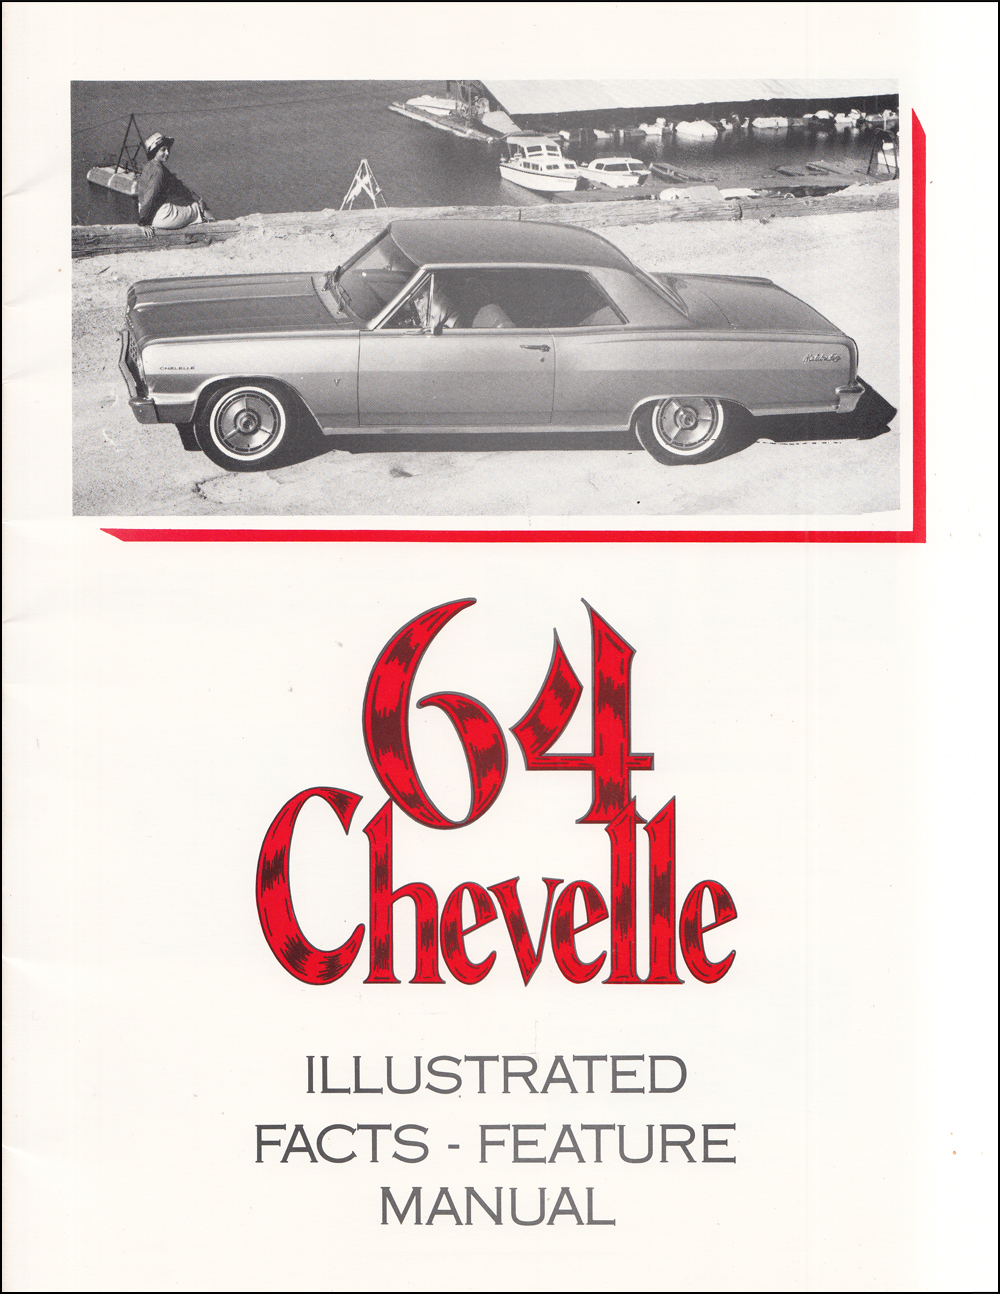 1964 Chevrolet Chevelle Finger Tip Facts Book Reprint